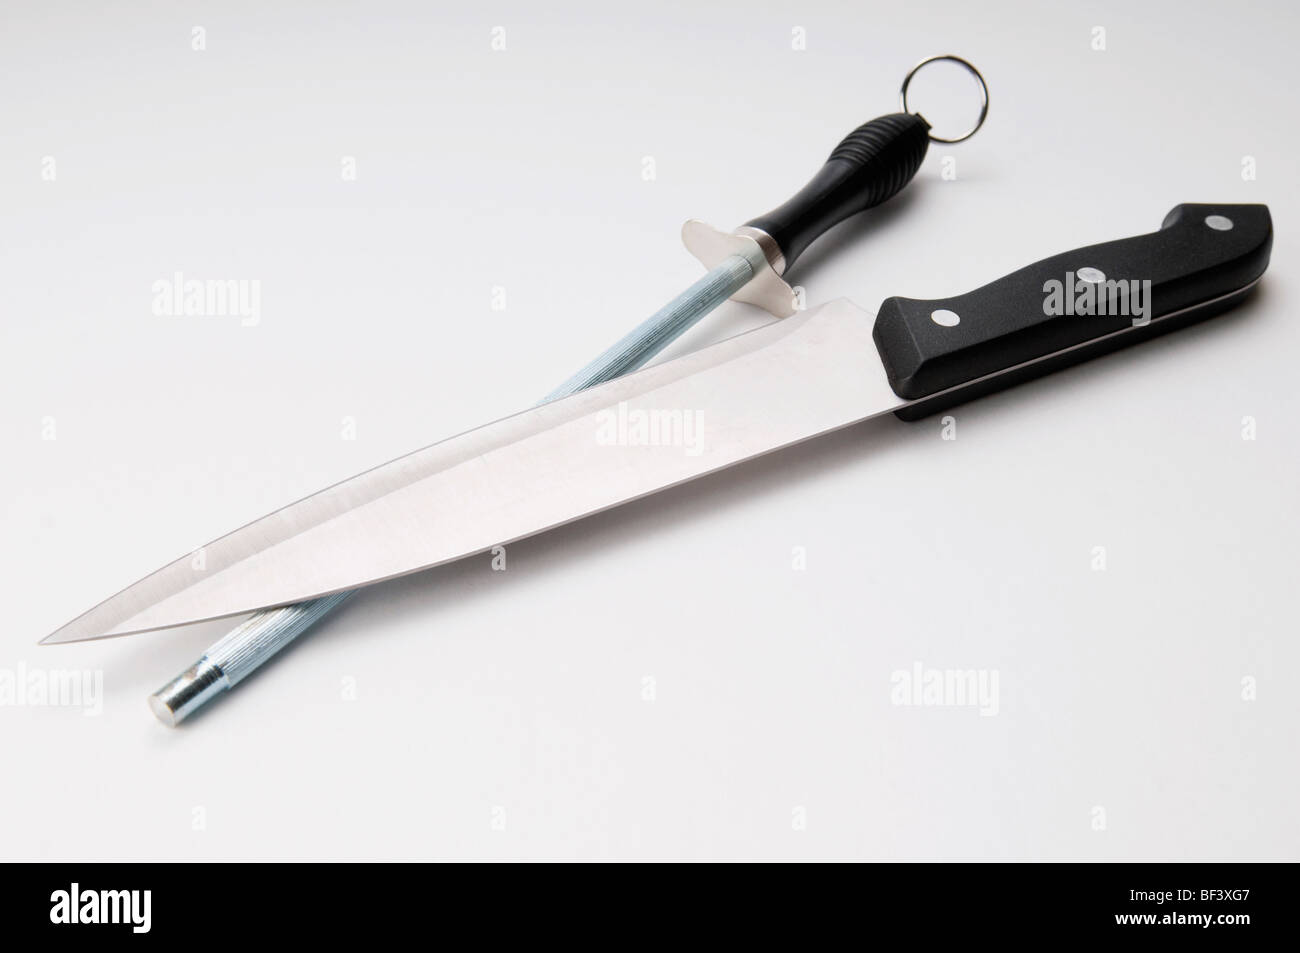 Close-up of a knife and a sharpening steel - Stock Image